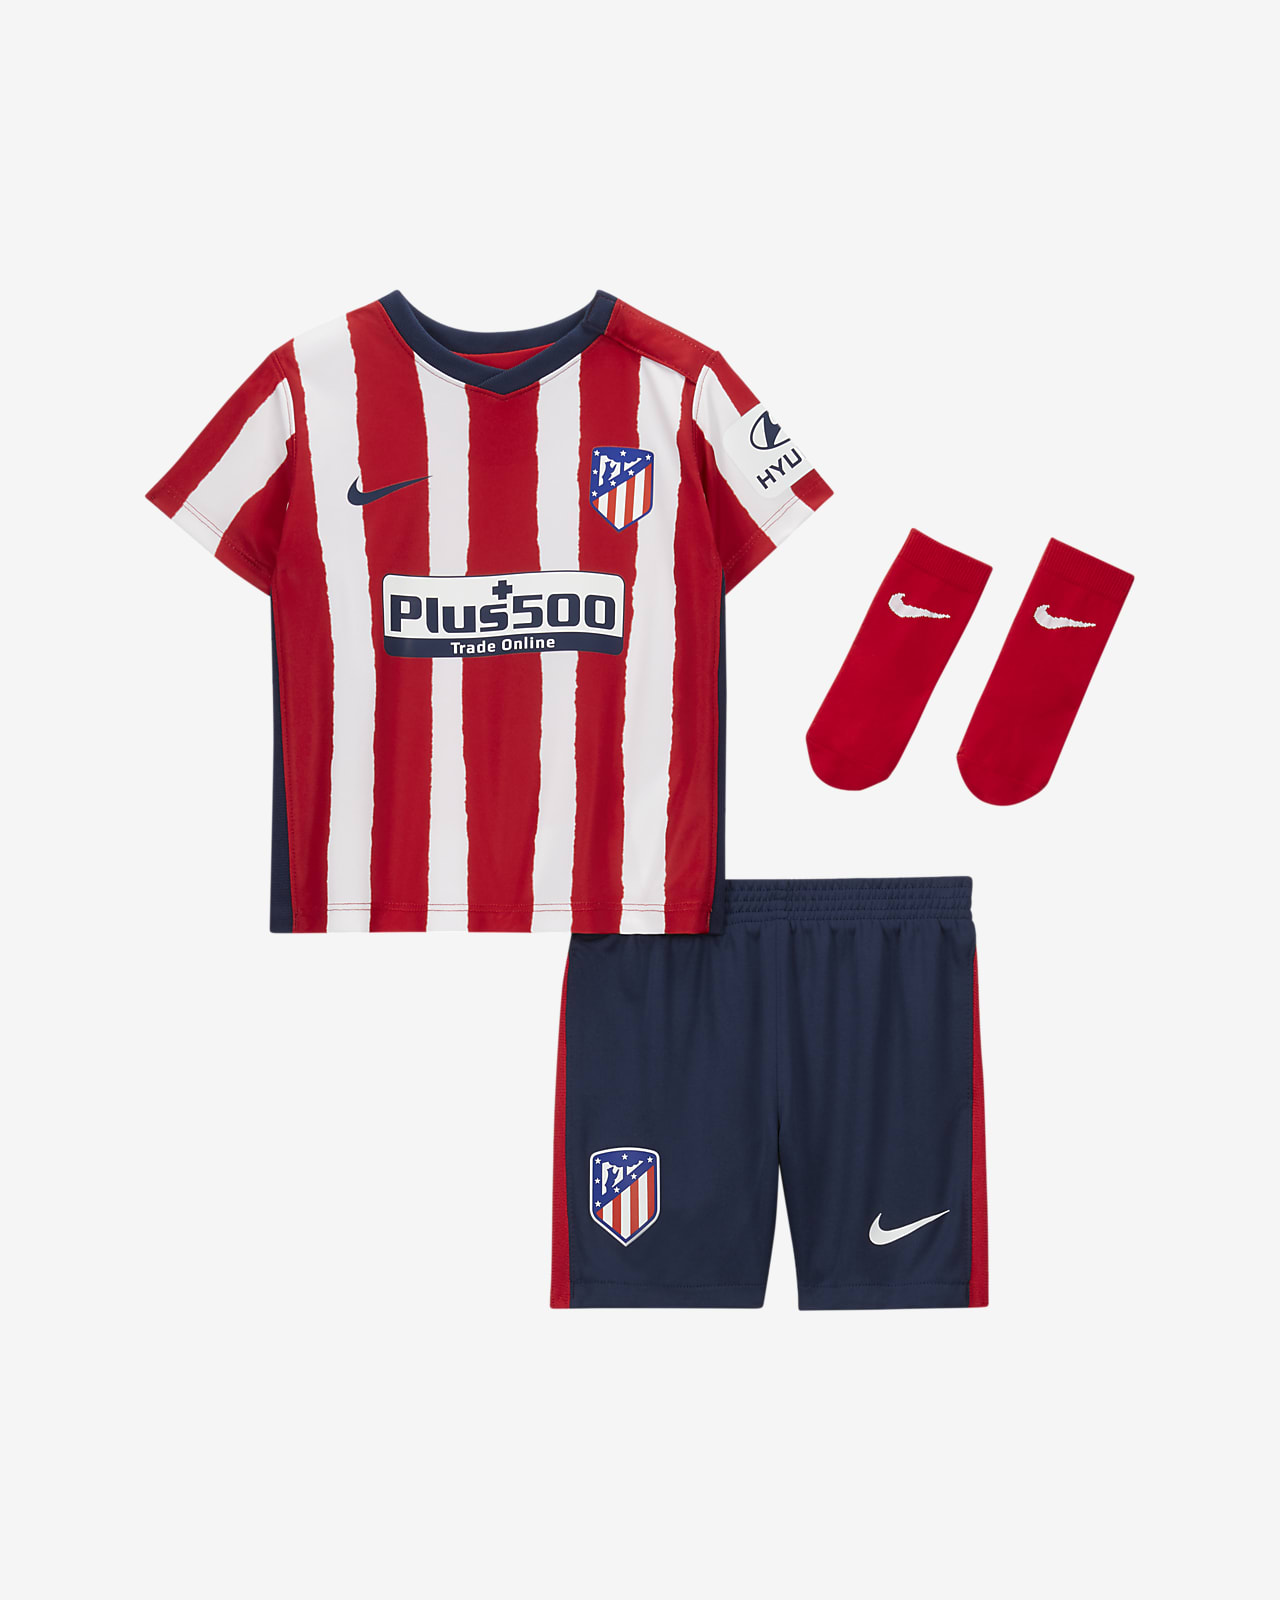 Atlético de Madrid 2020/21 Home Baby and Toddler Football Kit